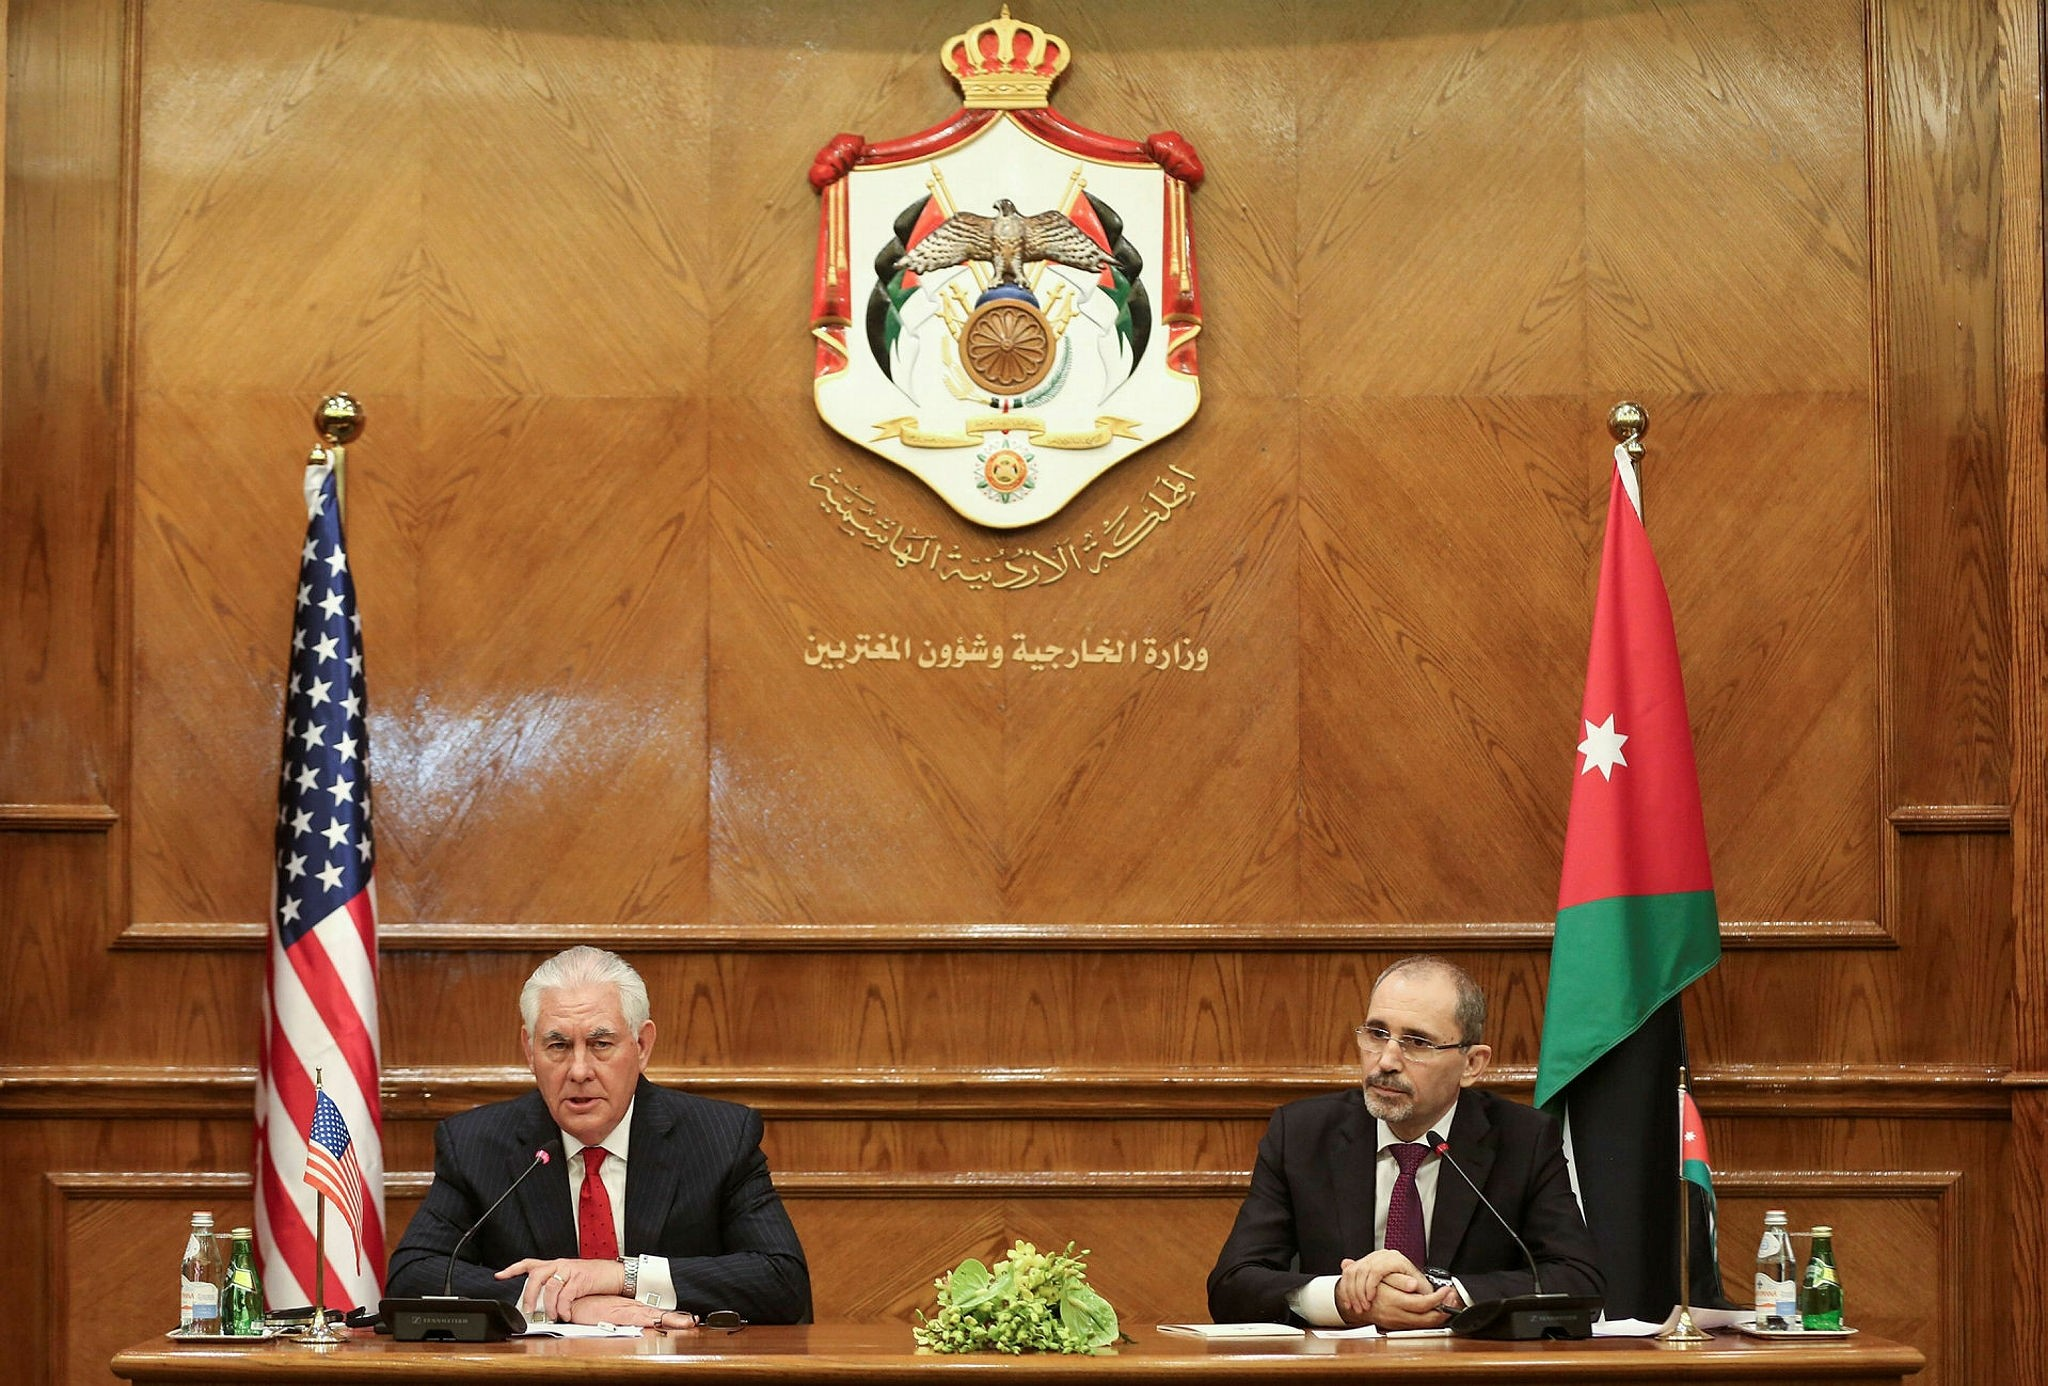 U.S. Secretary of State Rex Tillerson (L) and Jordanian Foreign Minister Ayman Safadi (R) at a joint press conference, Amman, Feb.14.